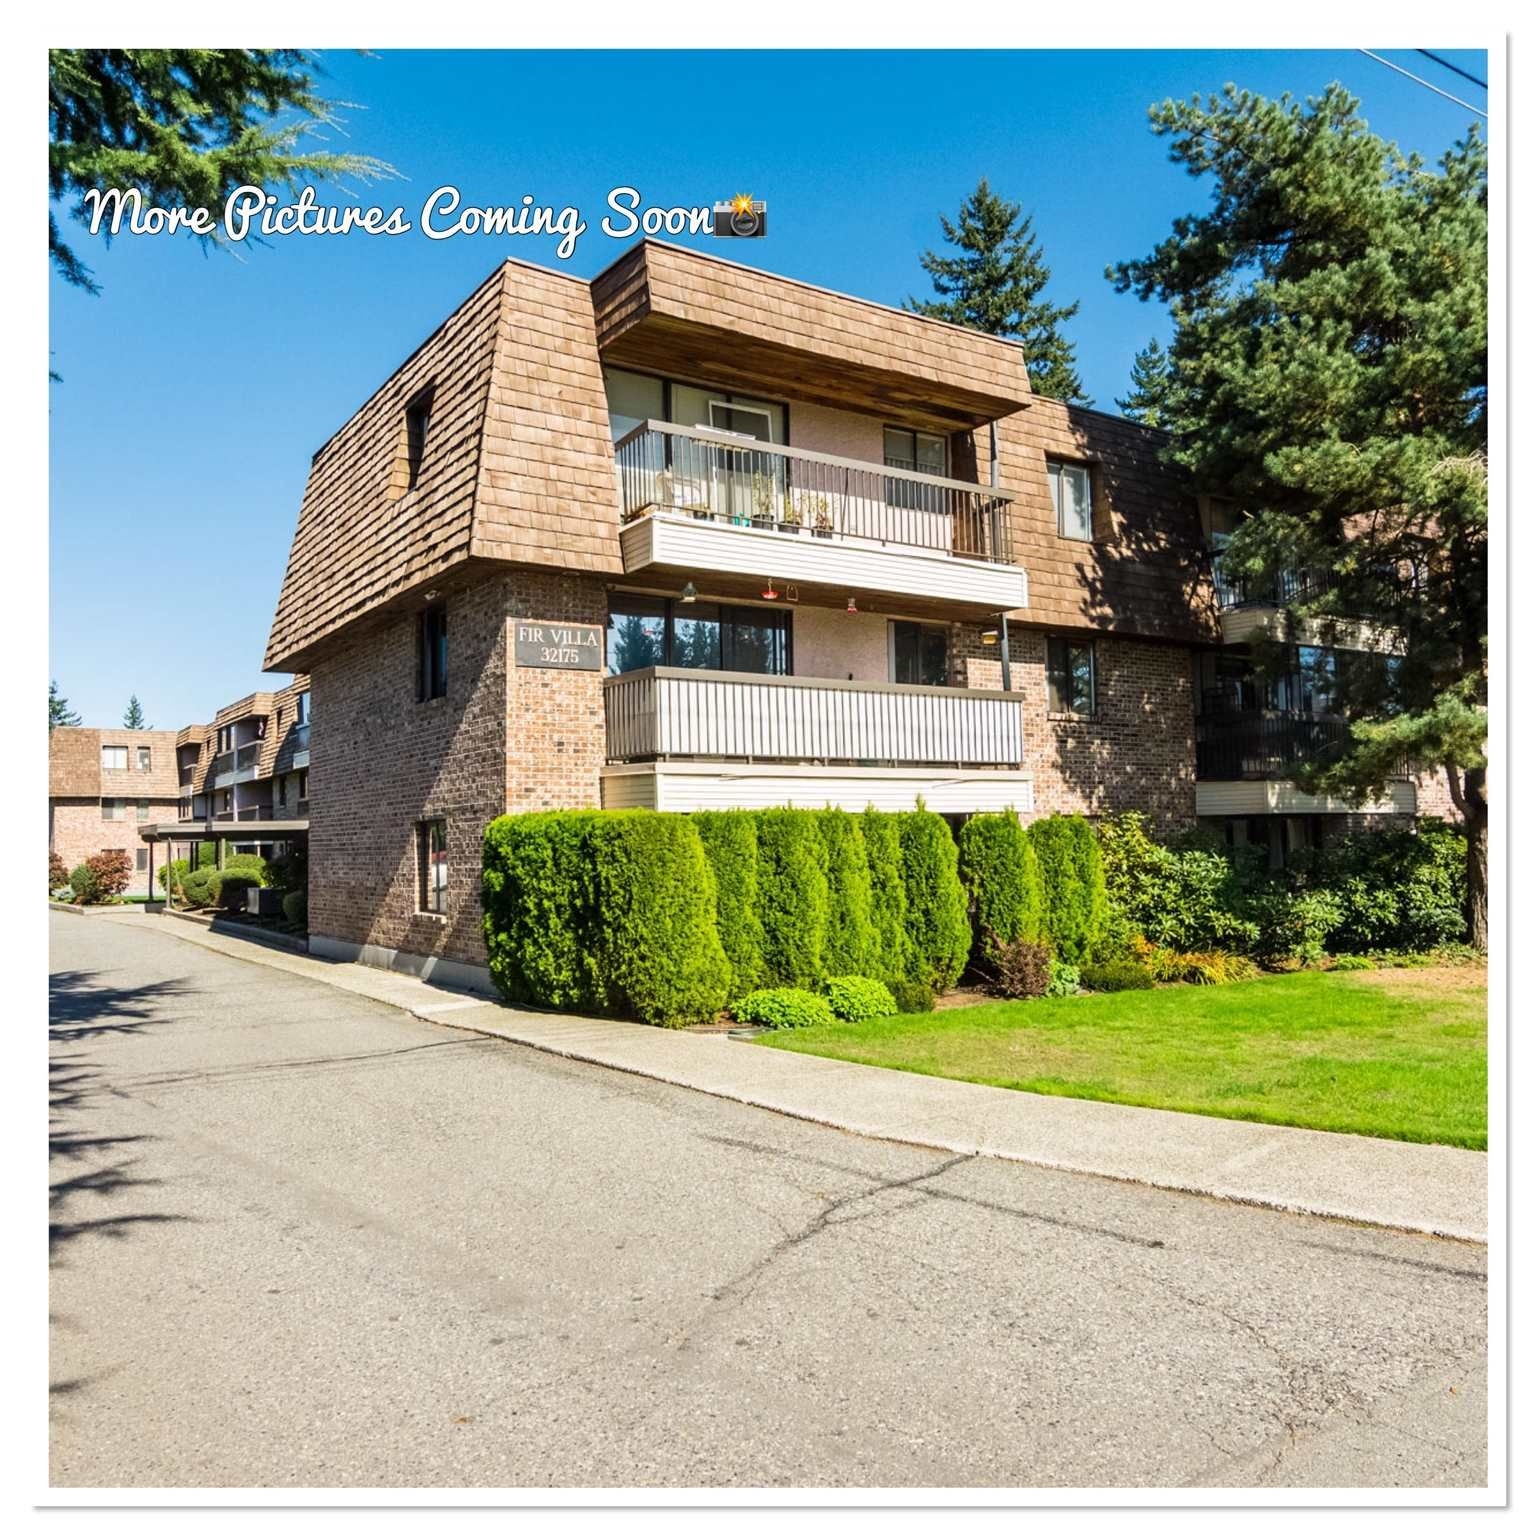 """Main Photo: 112 32175 OLD YALE Road in Abbotsford: Abbotsford West Condo for sale in """"FIR VILLA"""" : MLS®# R2602189"""